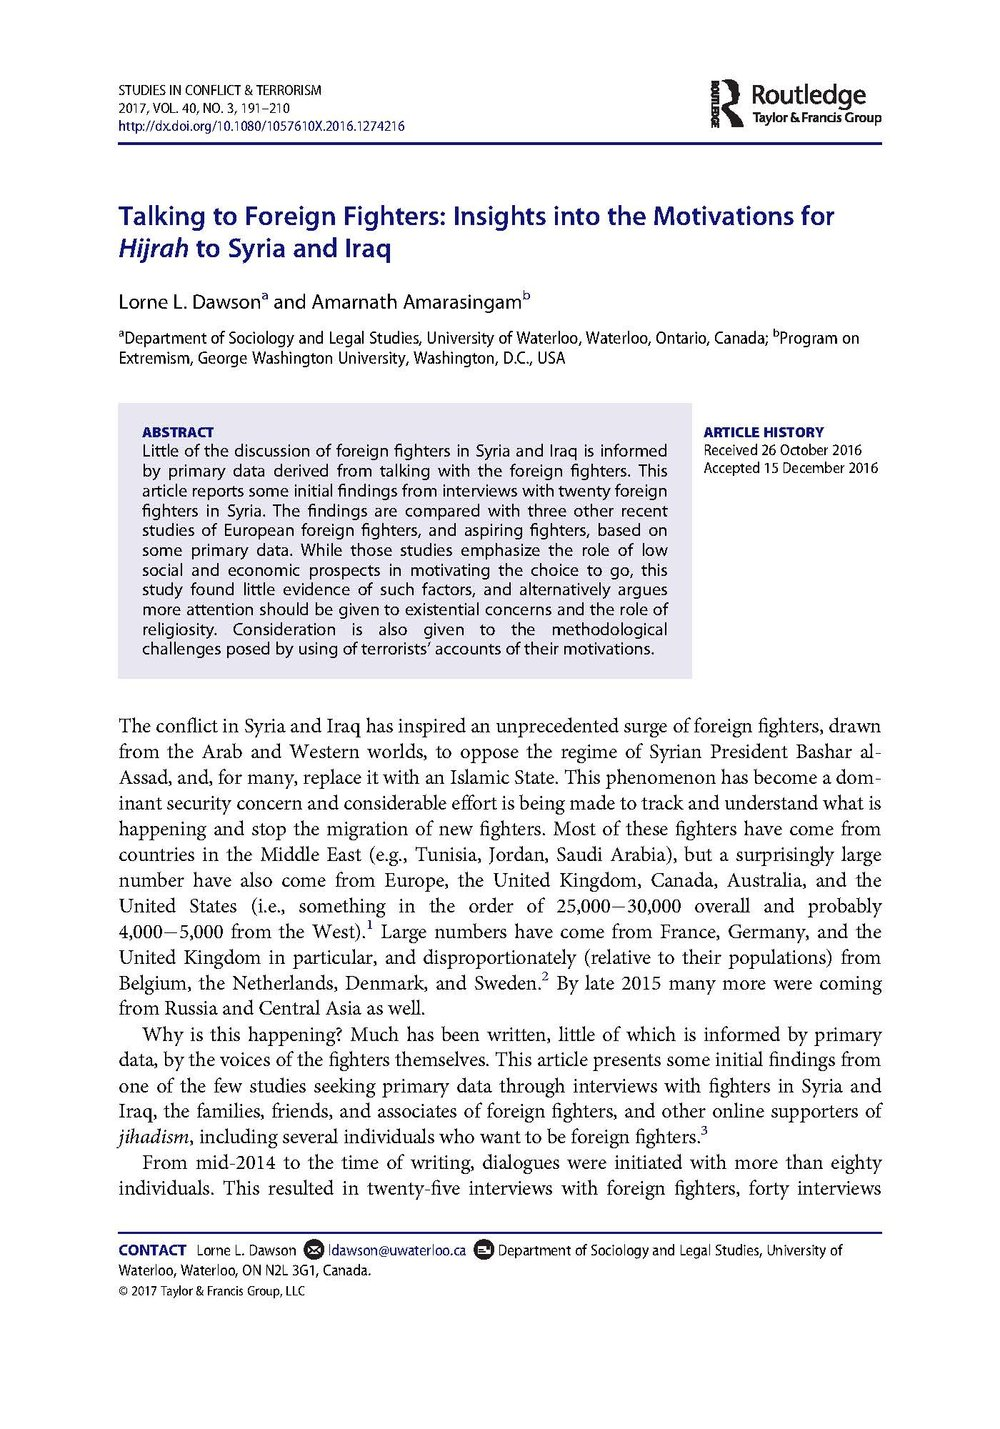 Talking to Foreign Fighters: Insights into the Motivations for Hijrah to Syria and Iraq